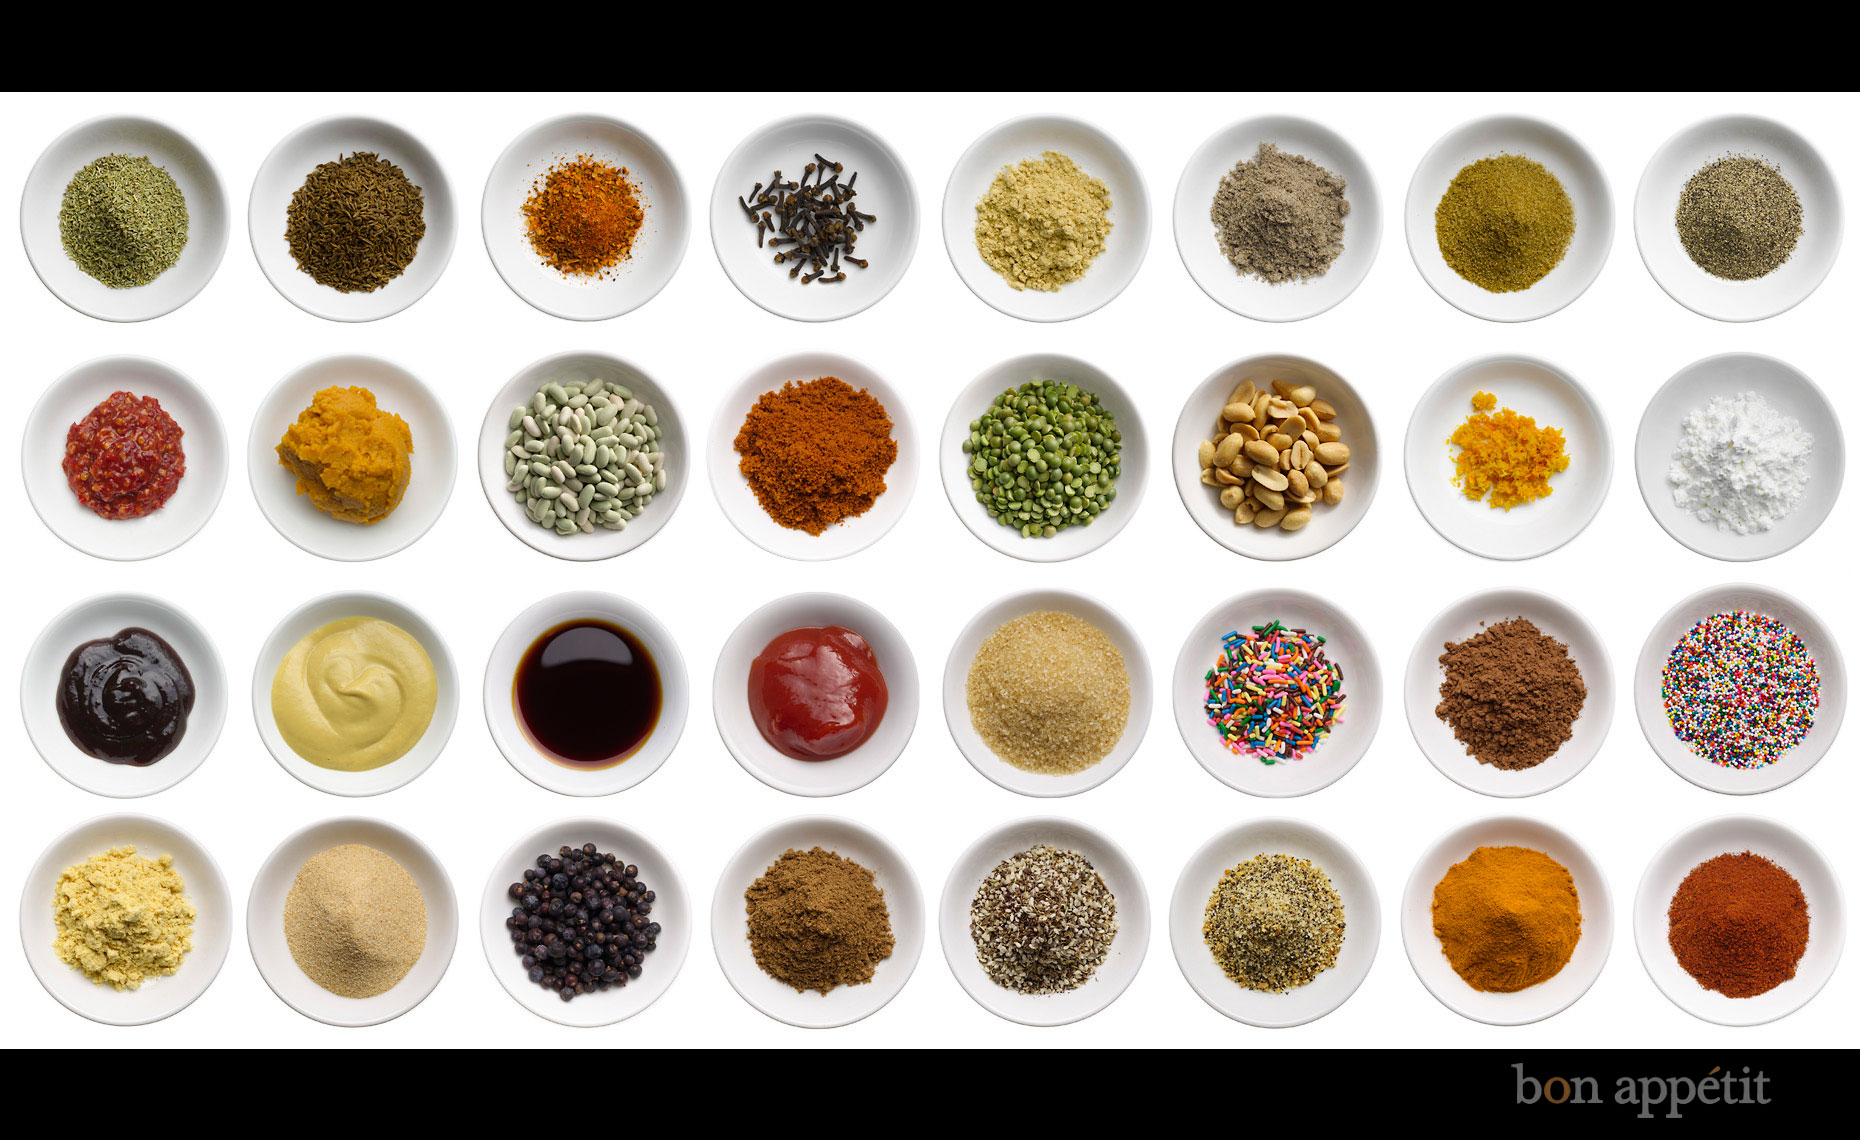 Food Still Life | Spice Collection in Dipping Bowls